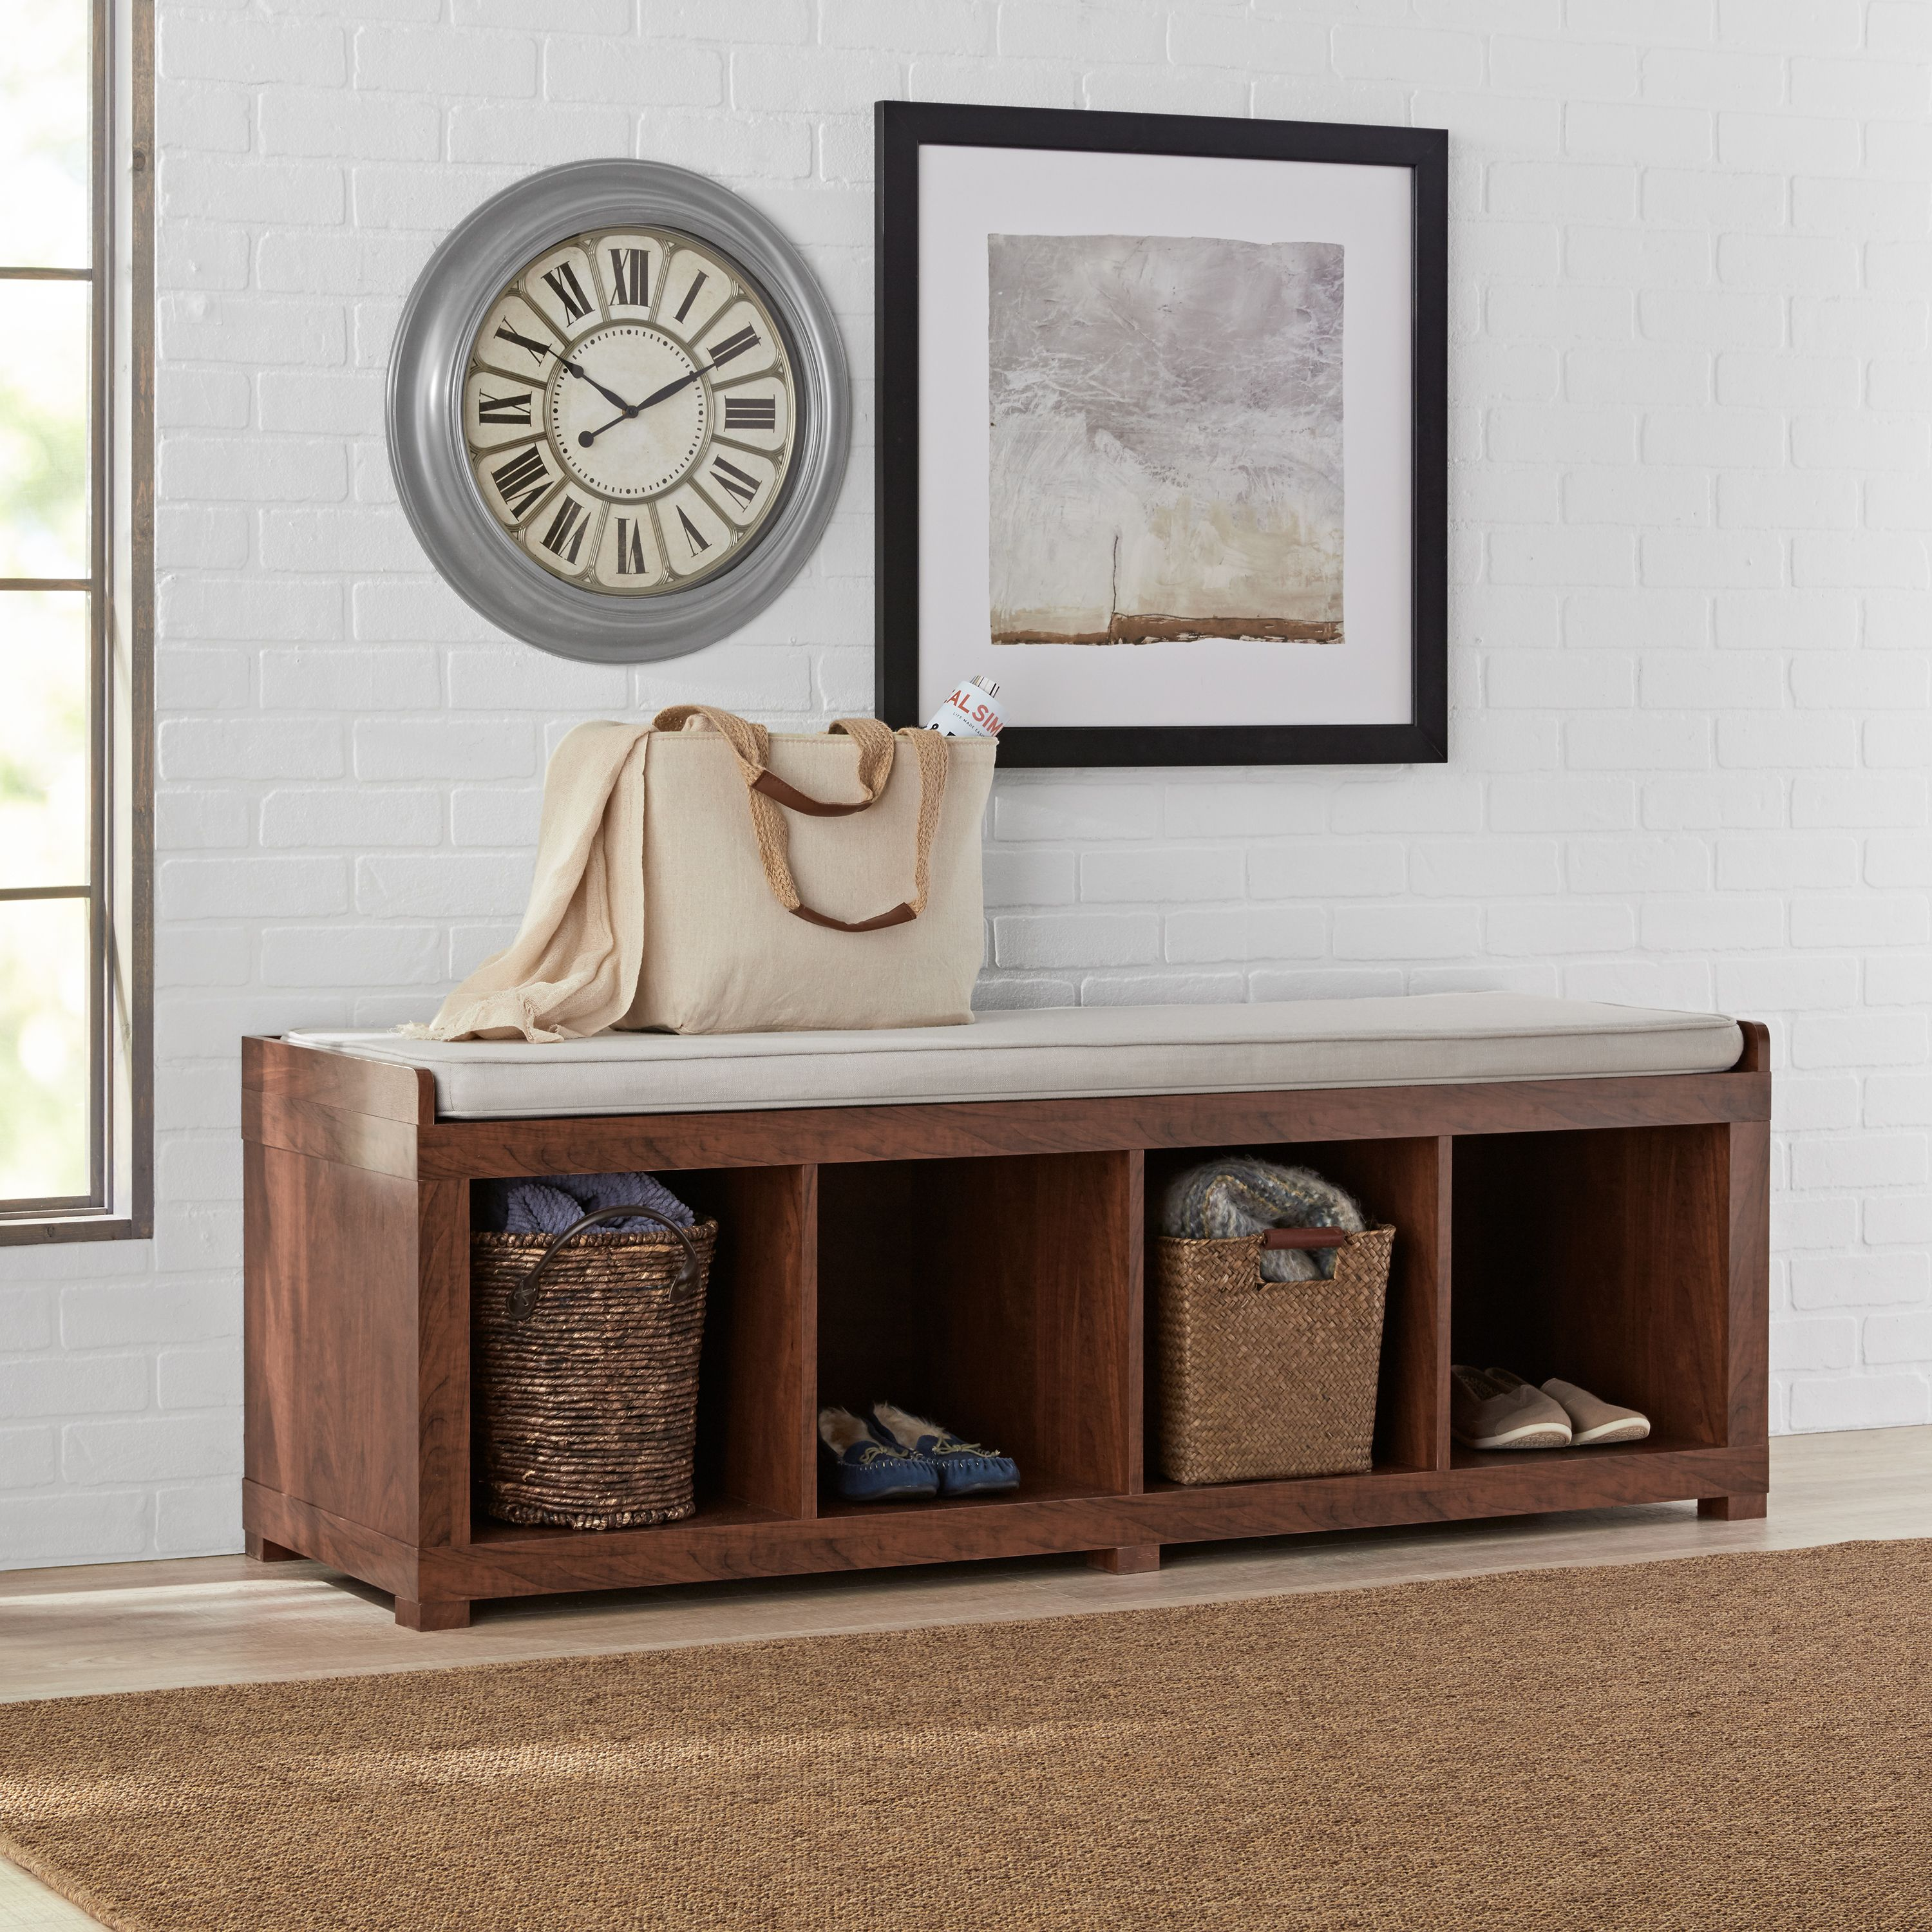 better homes and gardens 4 cube organizer storage bench multiple finishes